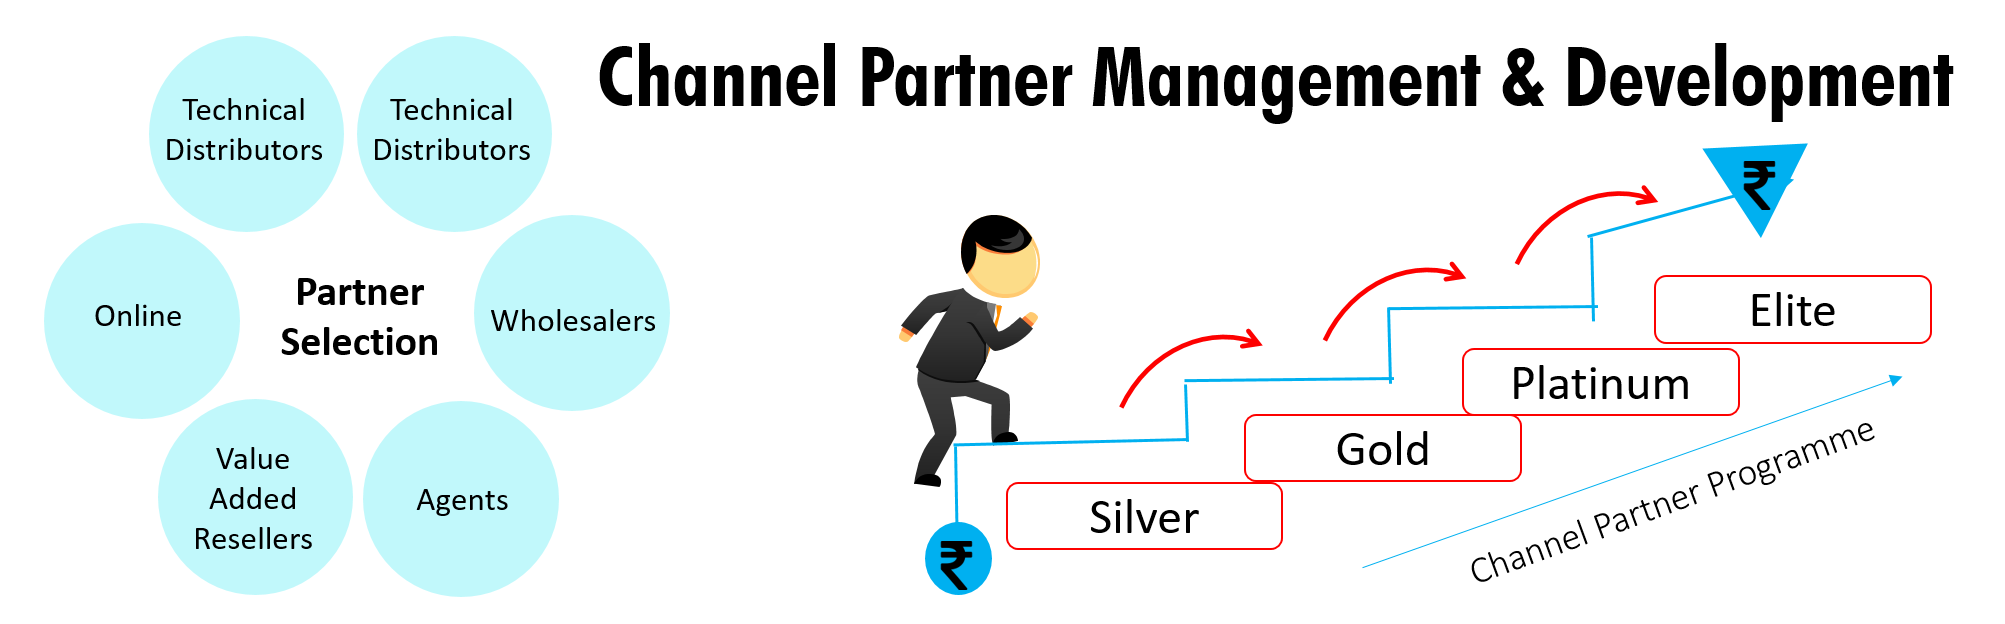 Channel Partner Management & Development